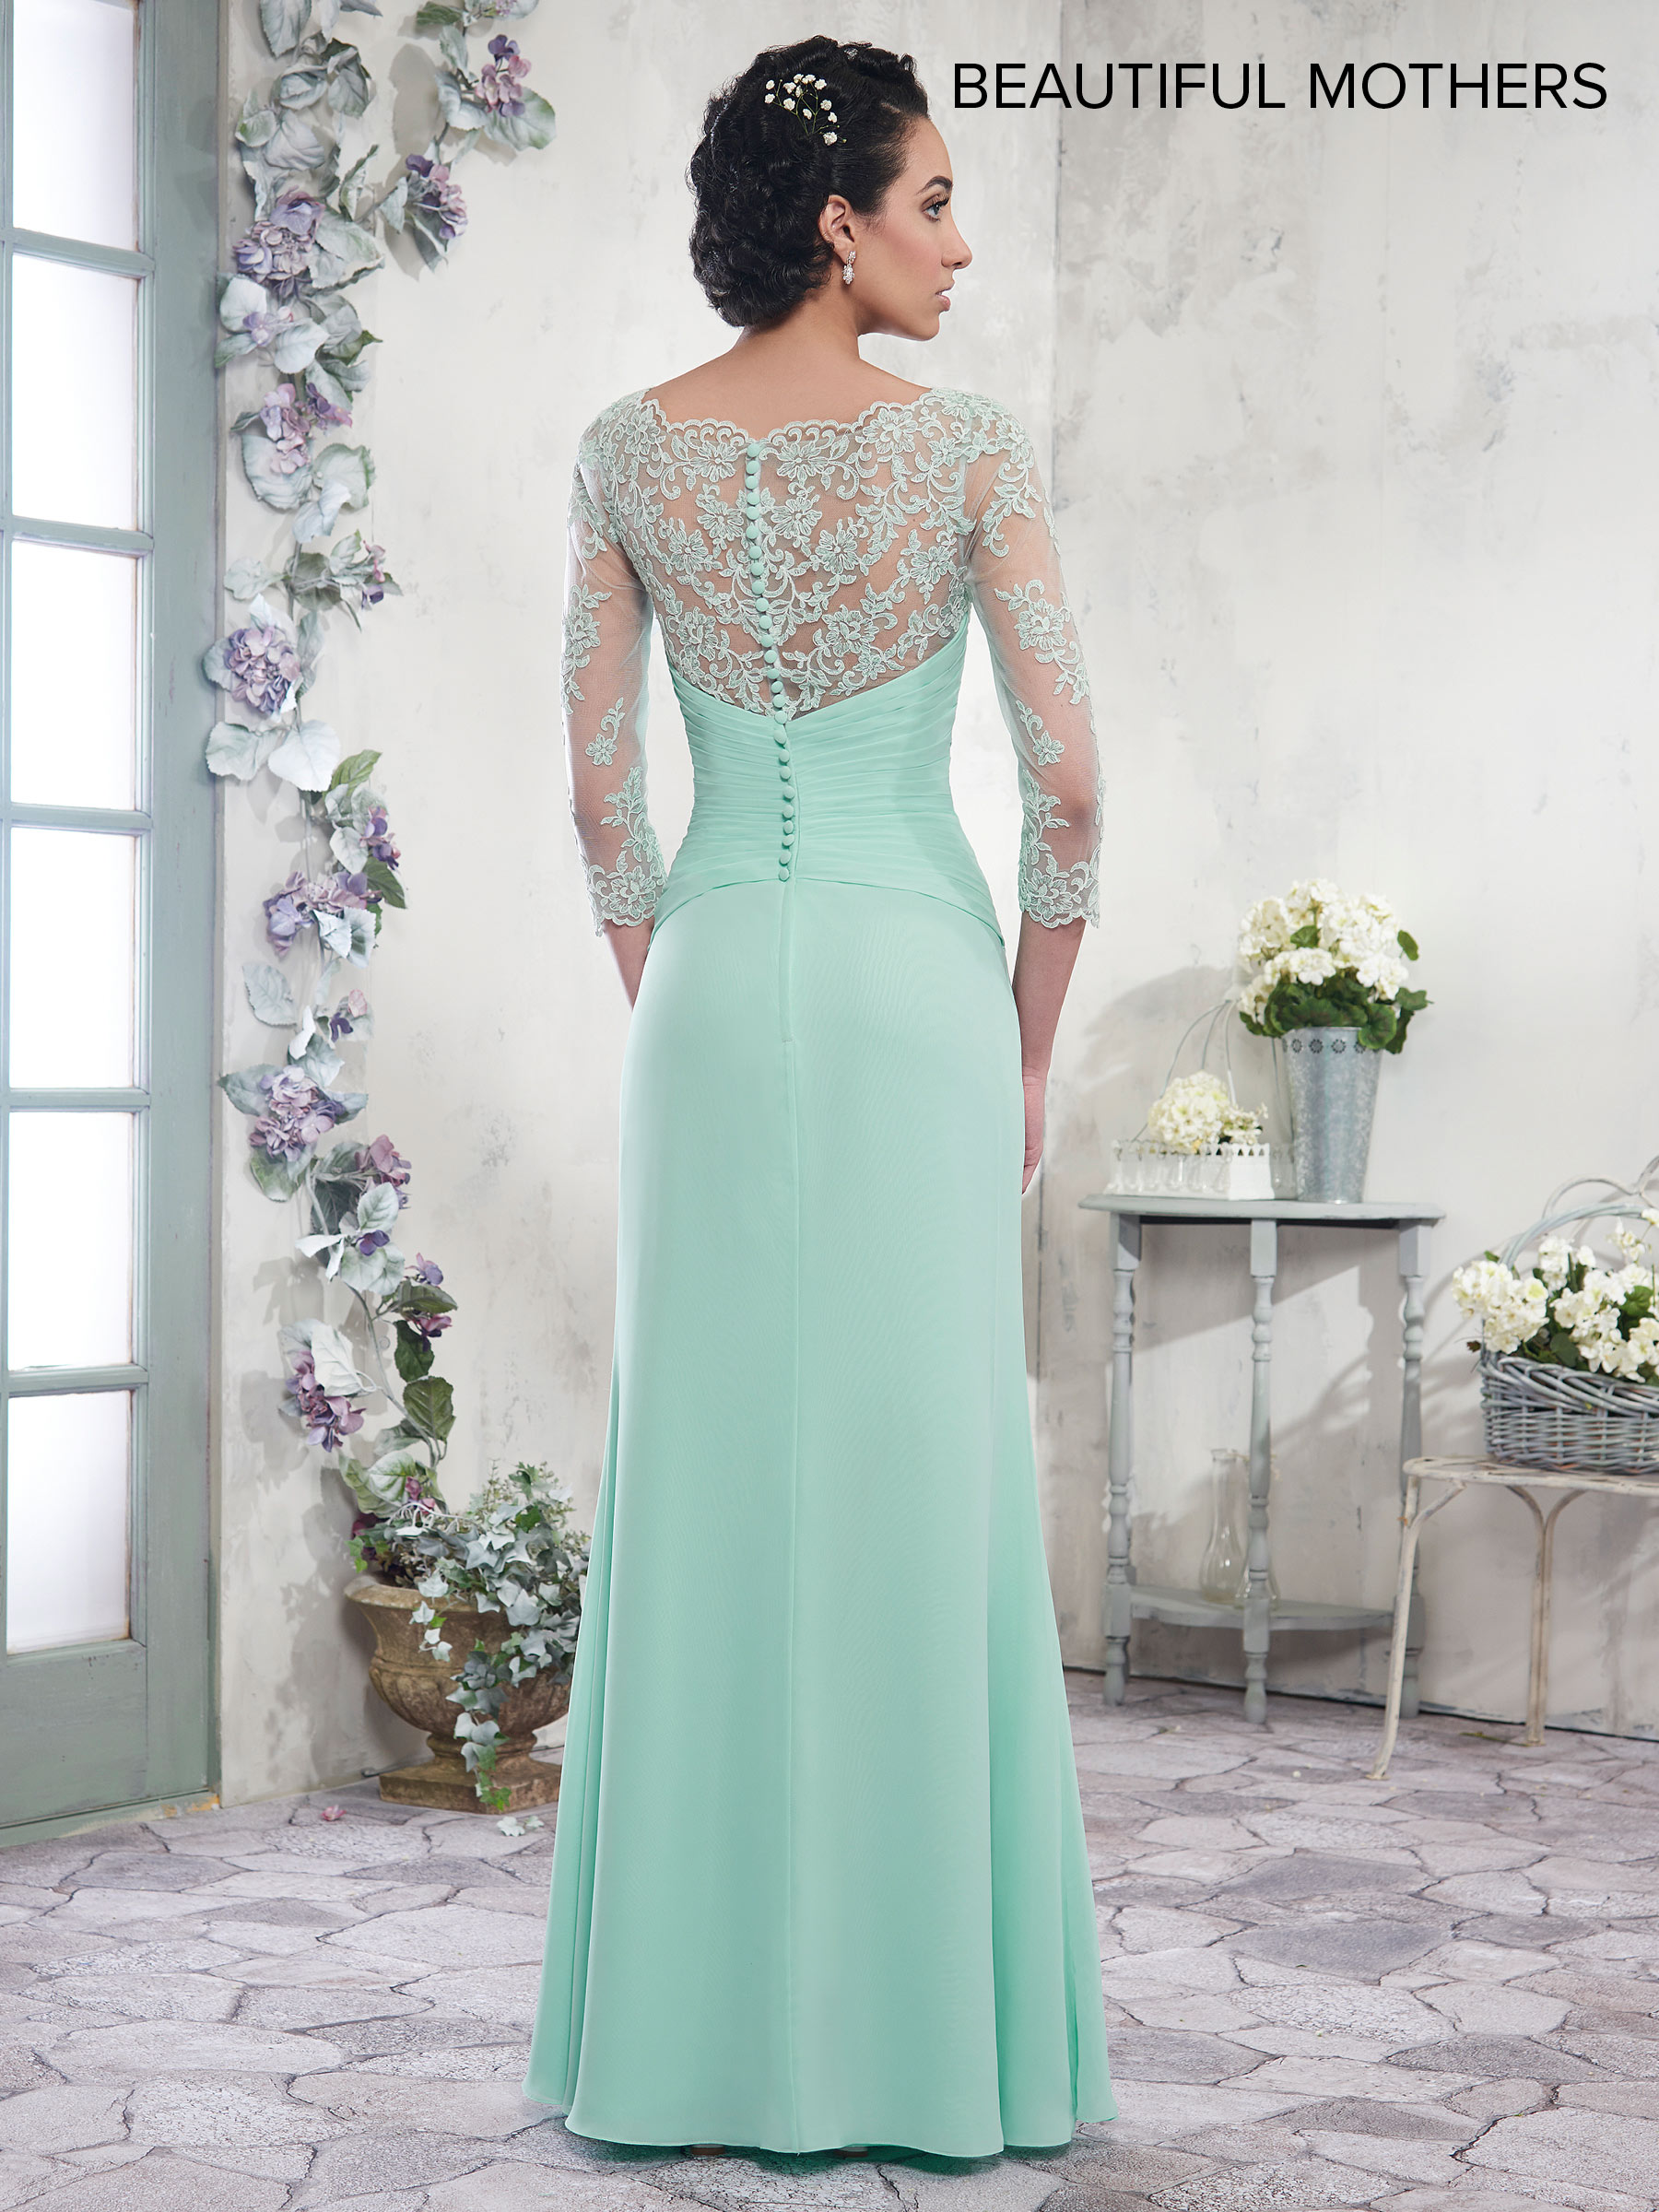 Mother Of The Bride Dresses | Beautiful Mothers | Style - MB8003